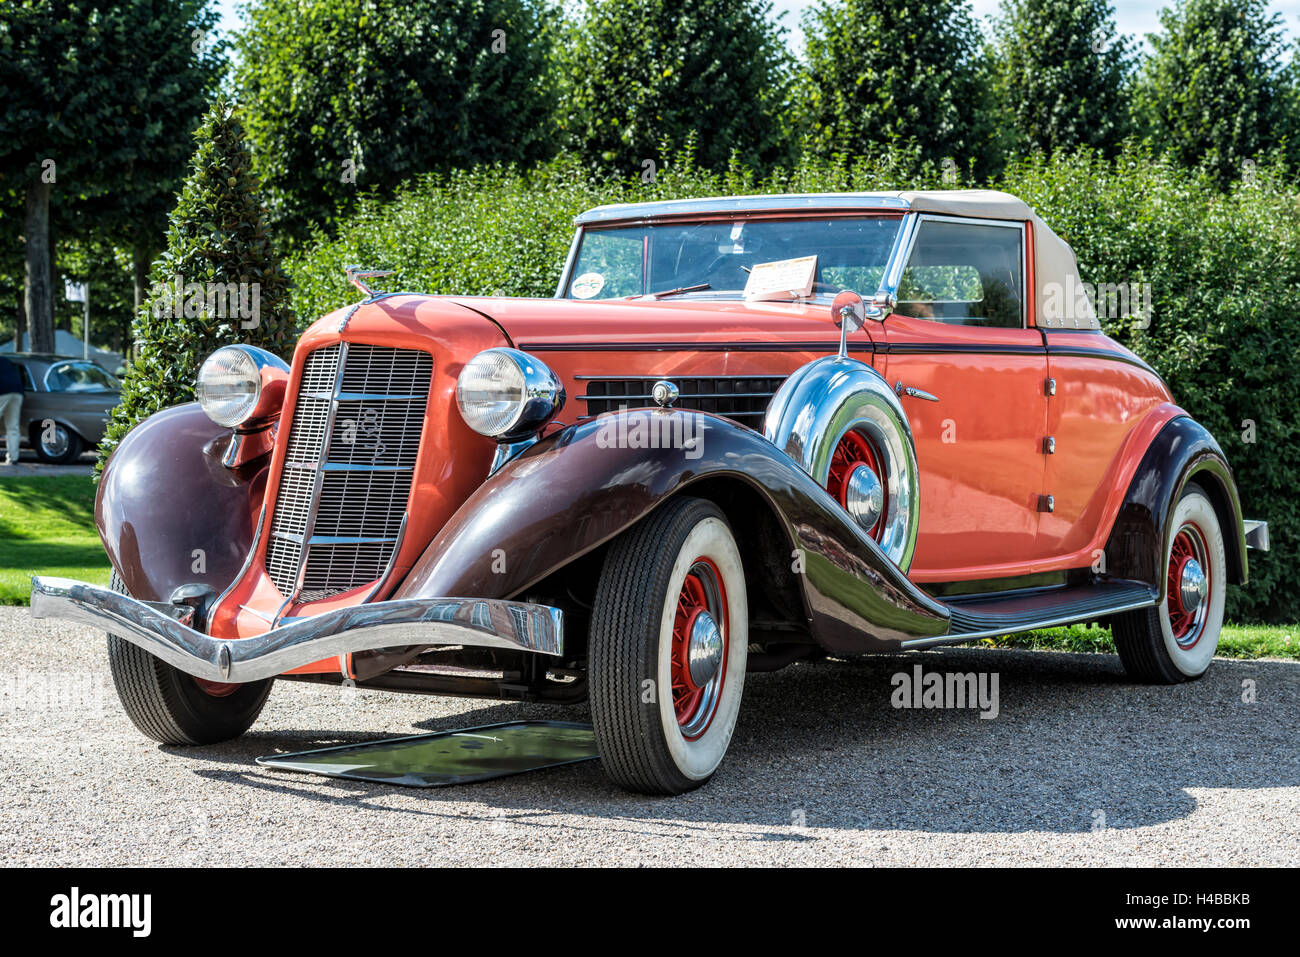 Germany, Schwetzingen, Classic gala, Auburn 852 Speedster, year of manufacture 1936, - Stock Image